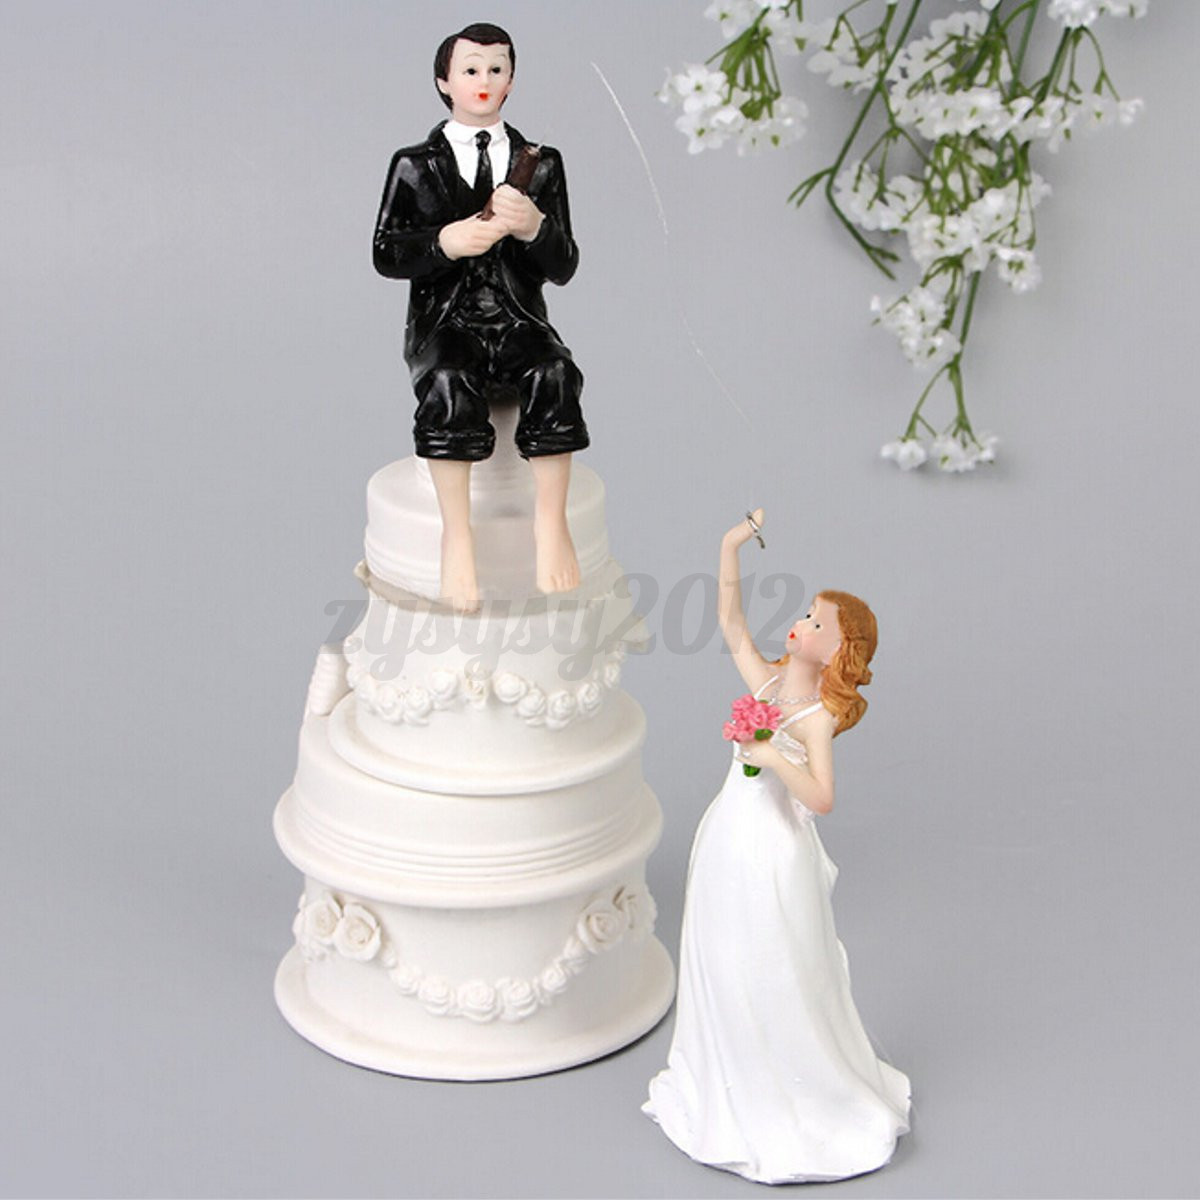 romantic wedding cake toppers wedding cake toppers figure and groom 19257